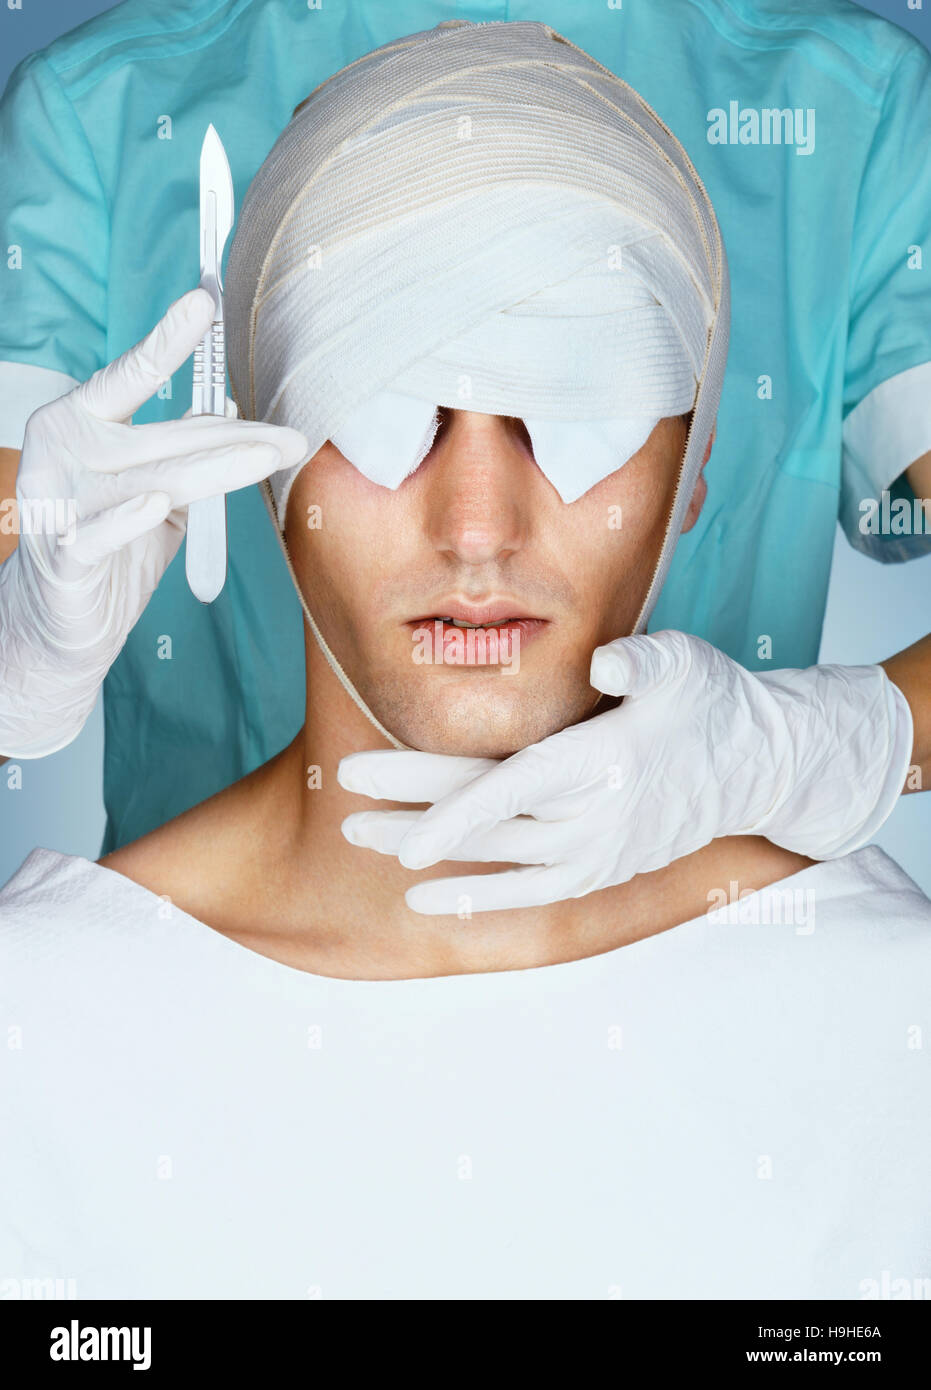 Patient with medical Bandage on his Eyes after cosmetic operation. Close up of bandaged face before Plastic Surgery. - Stock Image